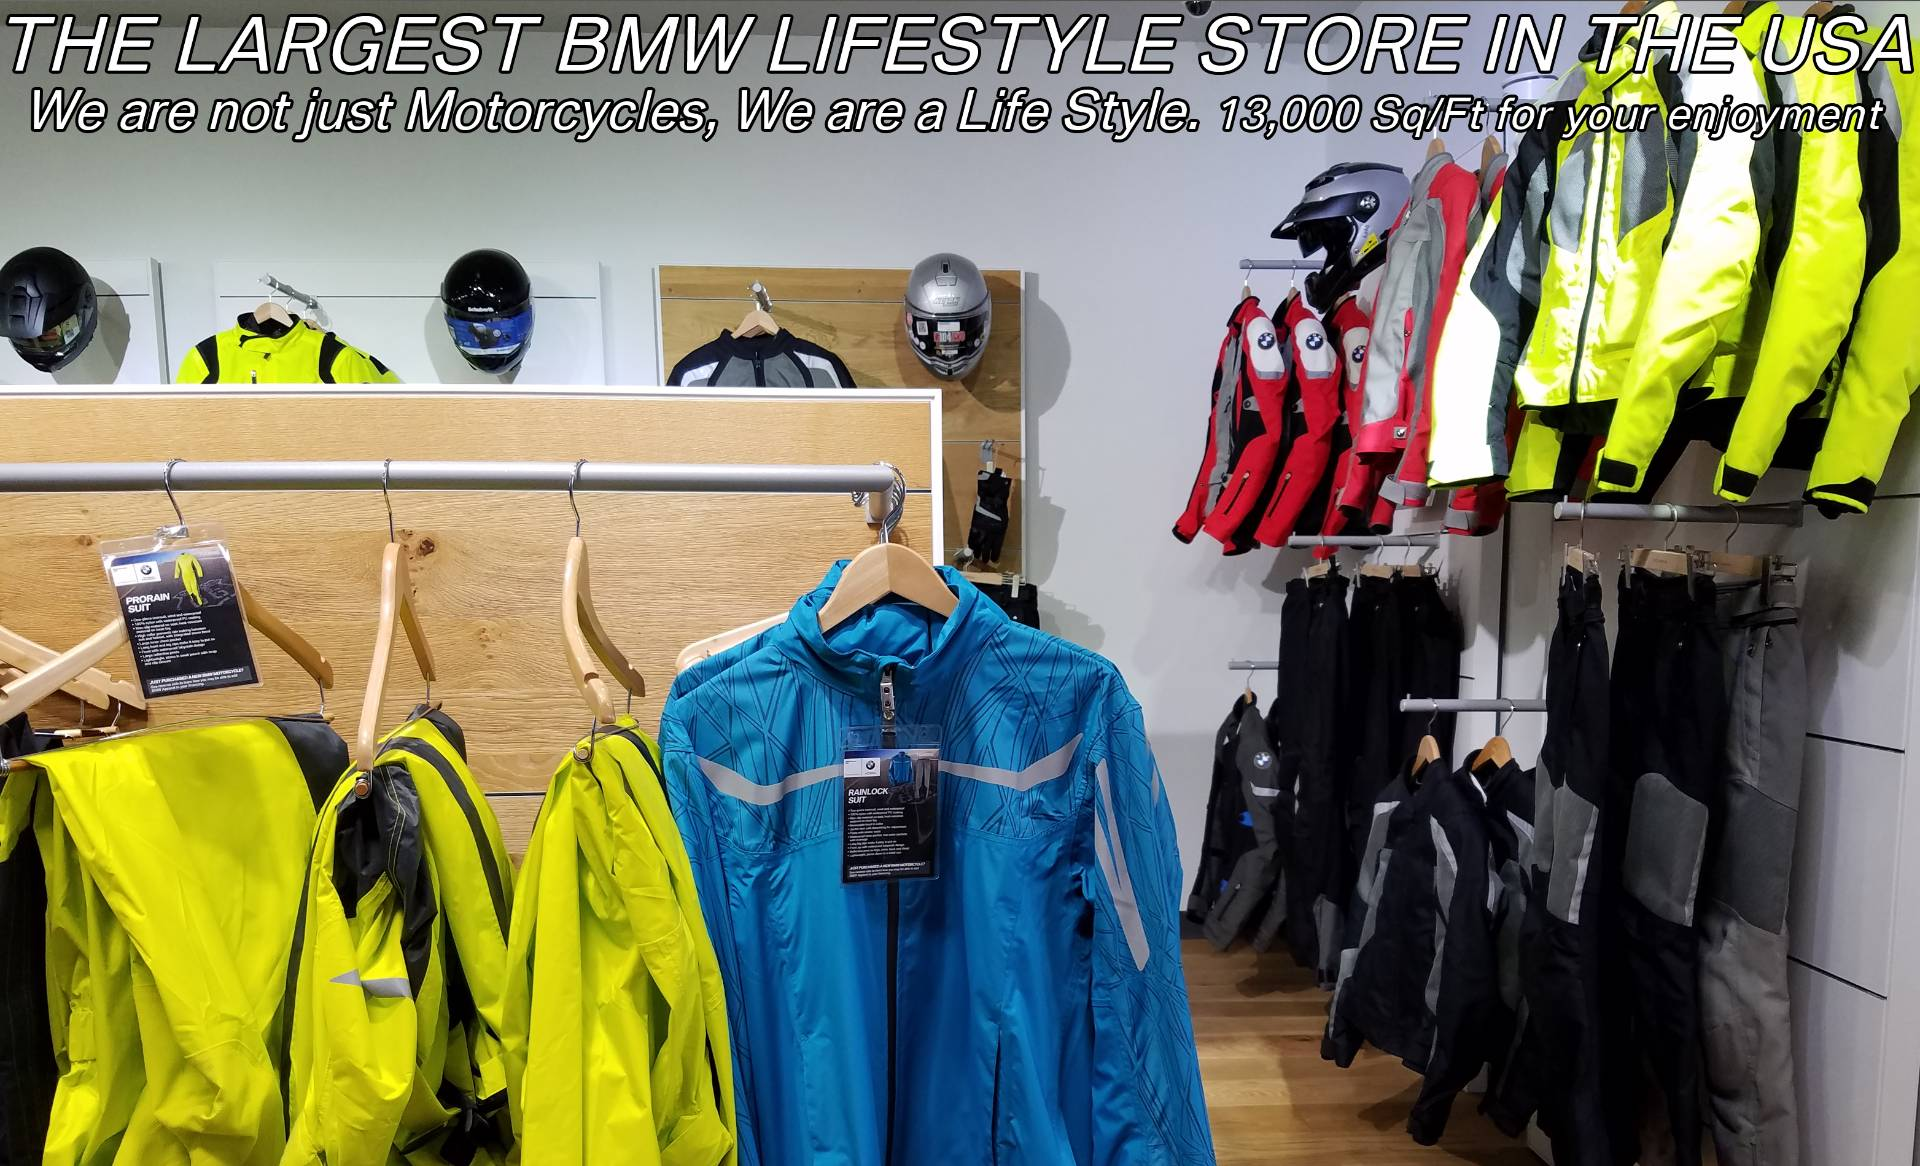 New 2019 BMW R 1250 GSA for sale, BMW for sale R 1250GSA, BMW Motorcycle R1250GSA, new BMW 1250GS Adventure, R1250GSAdventure, BMW Adventure, BMW Motorcycles of Miami, Motorcycles of Miami - Photo 52